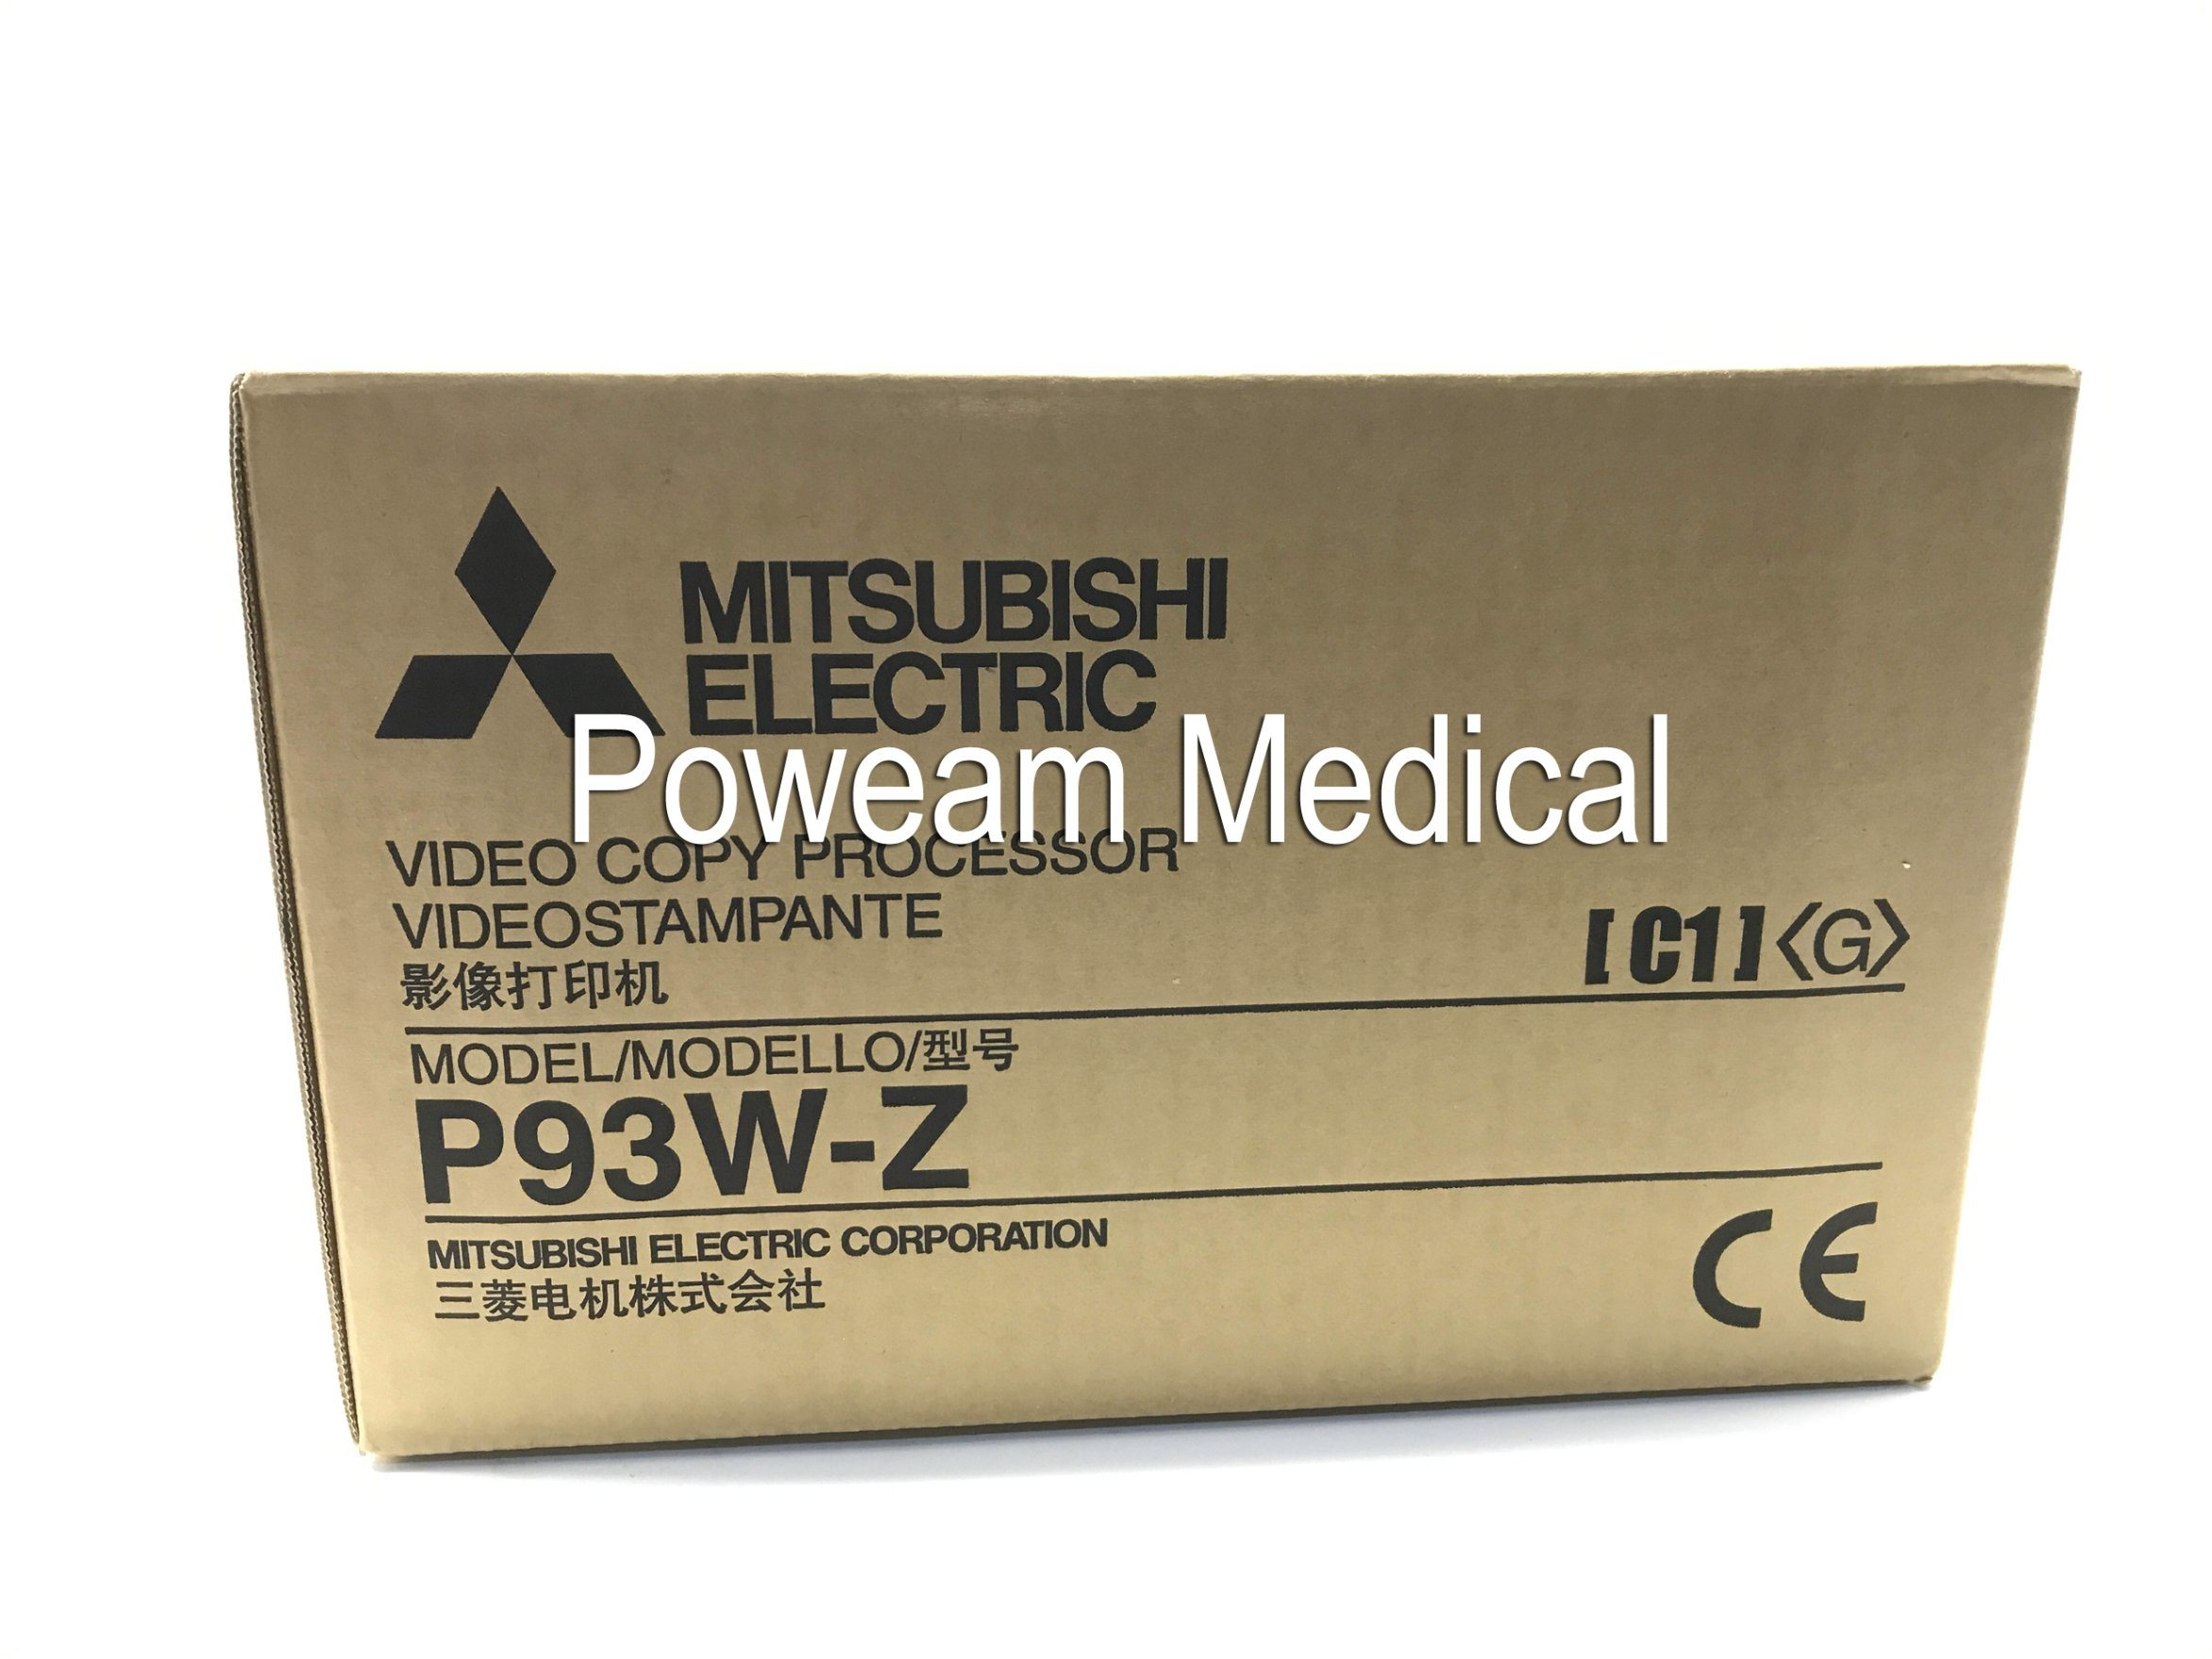 Ce Approval Mitsubishi Ultrasound Scanner Video Thermal Recorder Printer (P93)